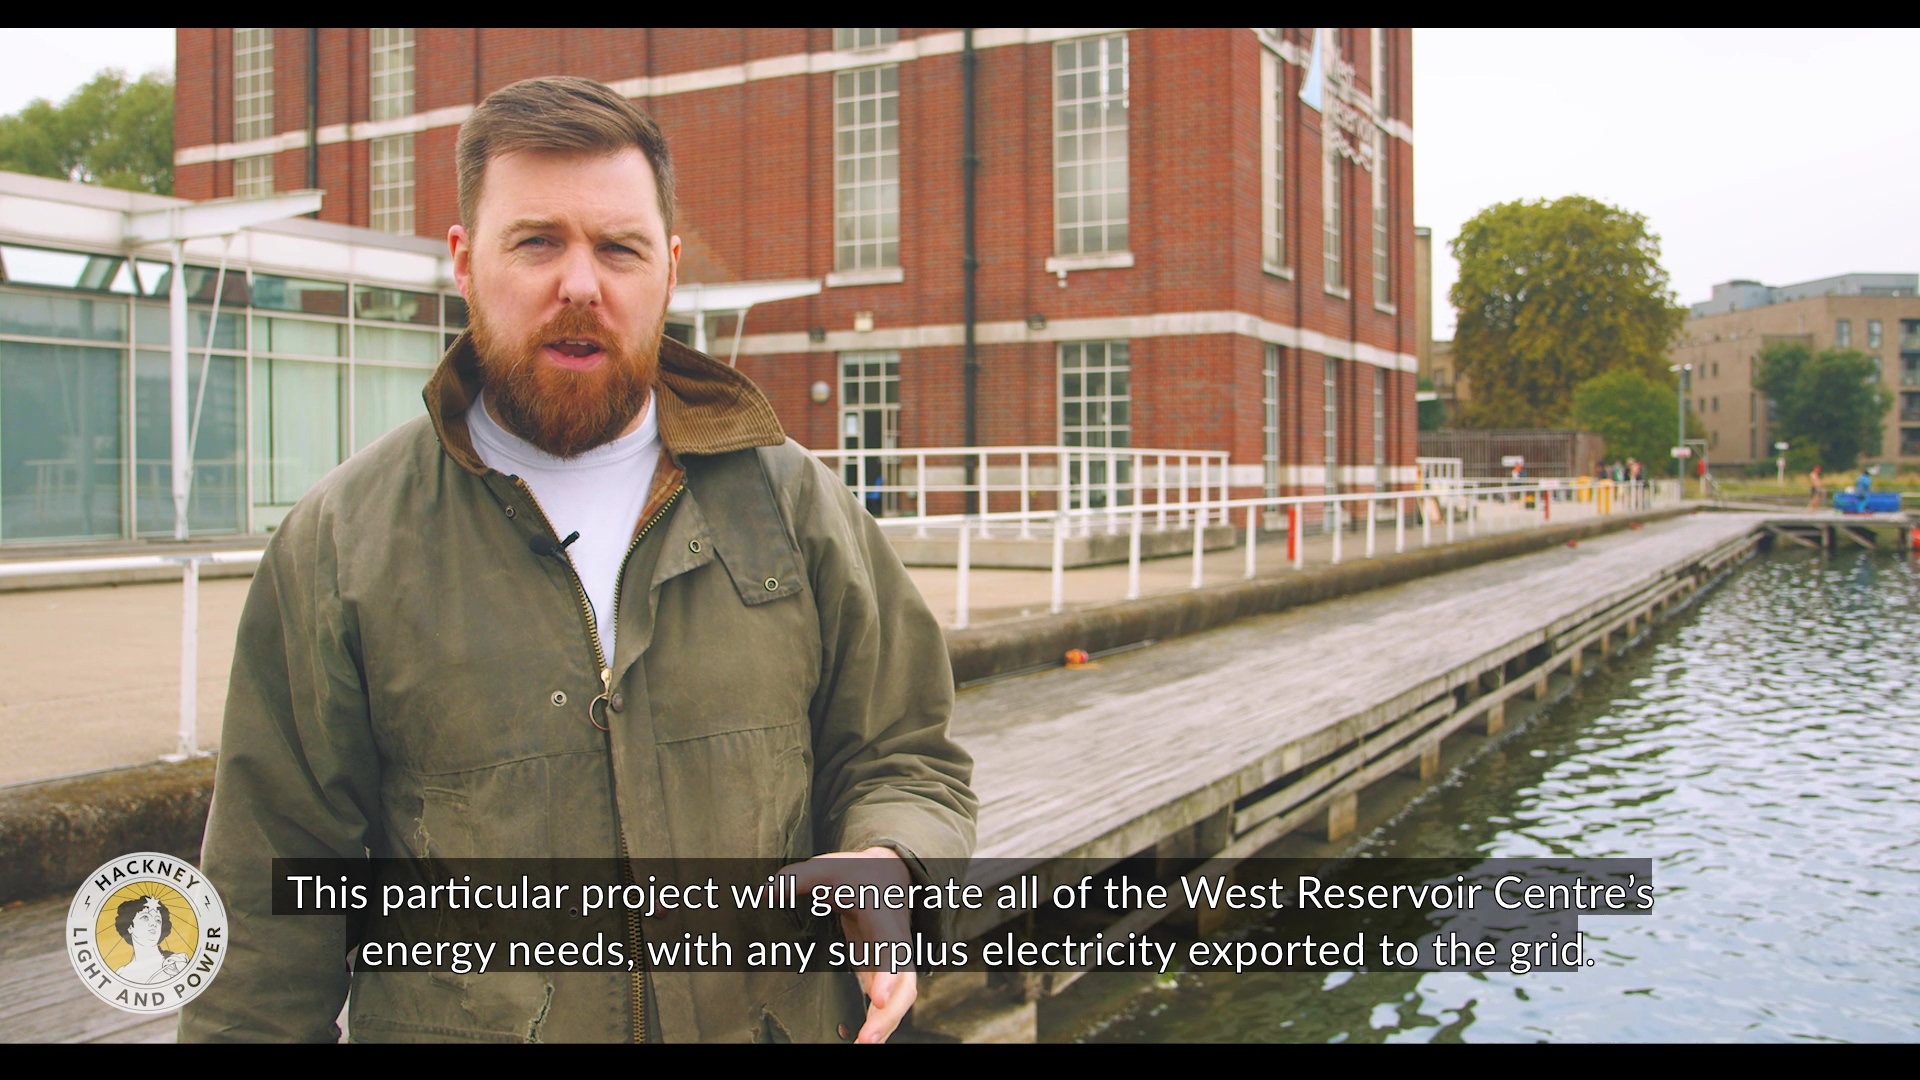 Hackney Council video